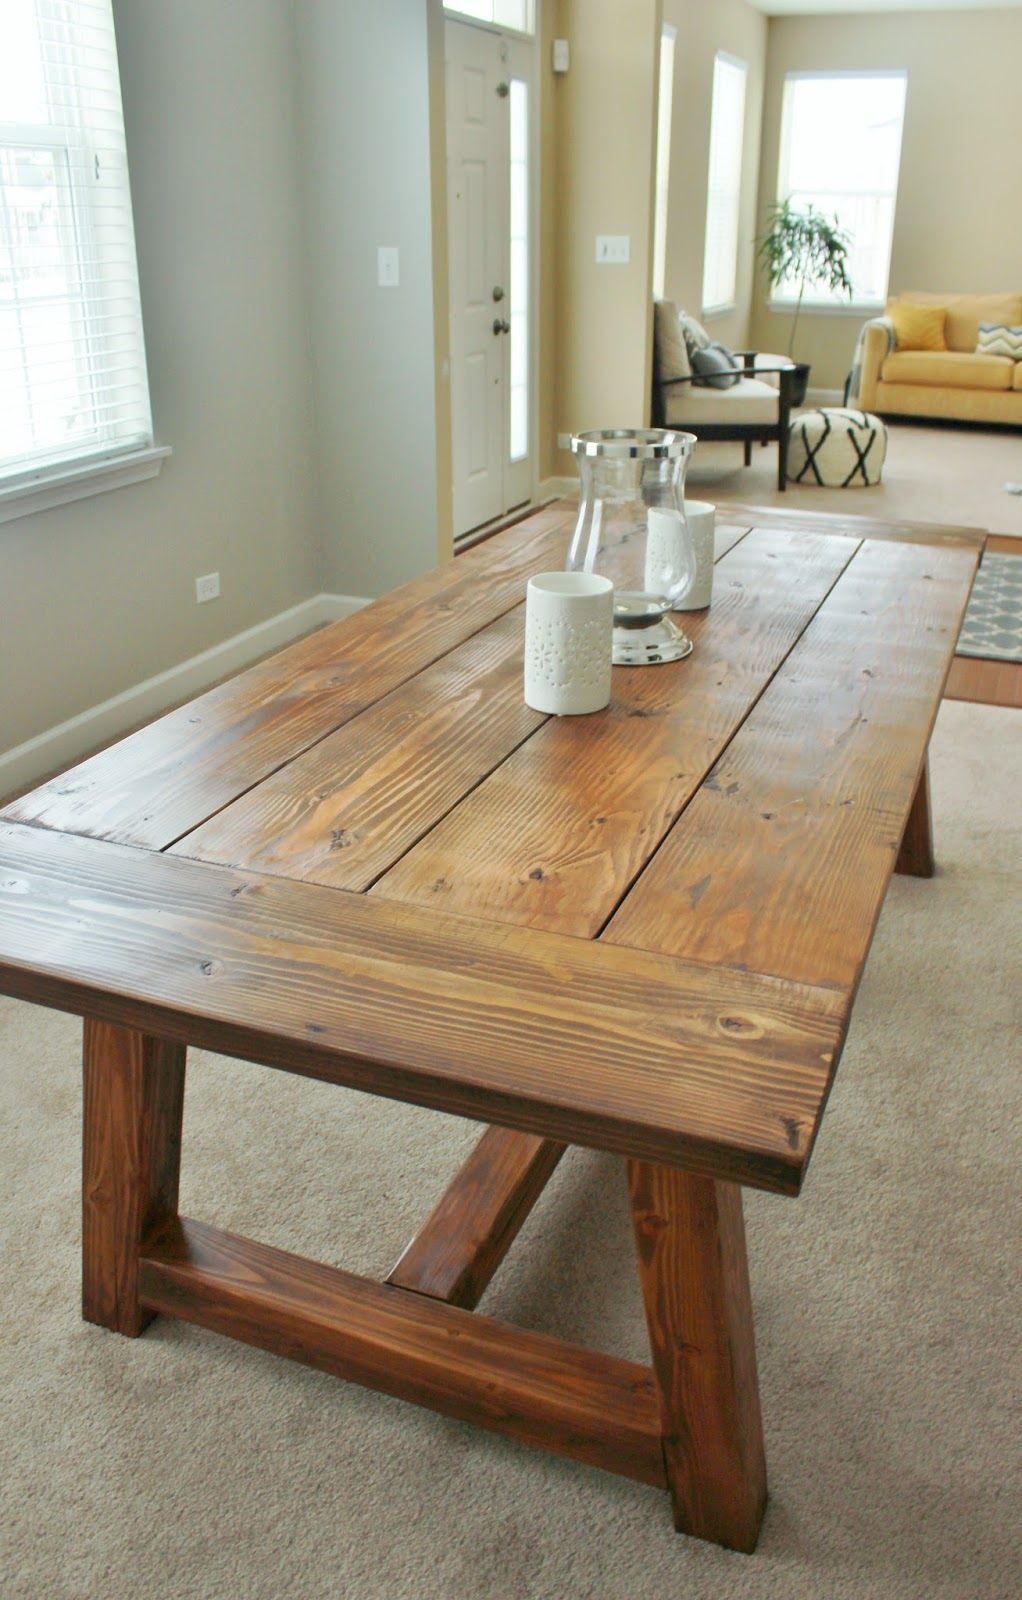 DIY farmhouse table inspired by Restoration Hardware. Created with easy-to-follow Ana White plans. #diyhomedecor